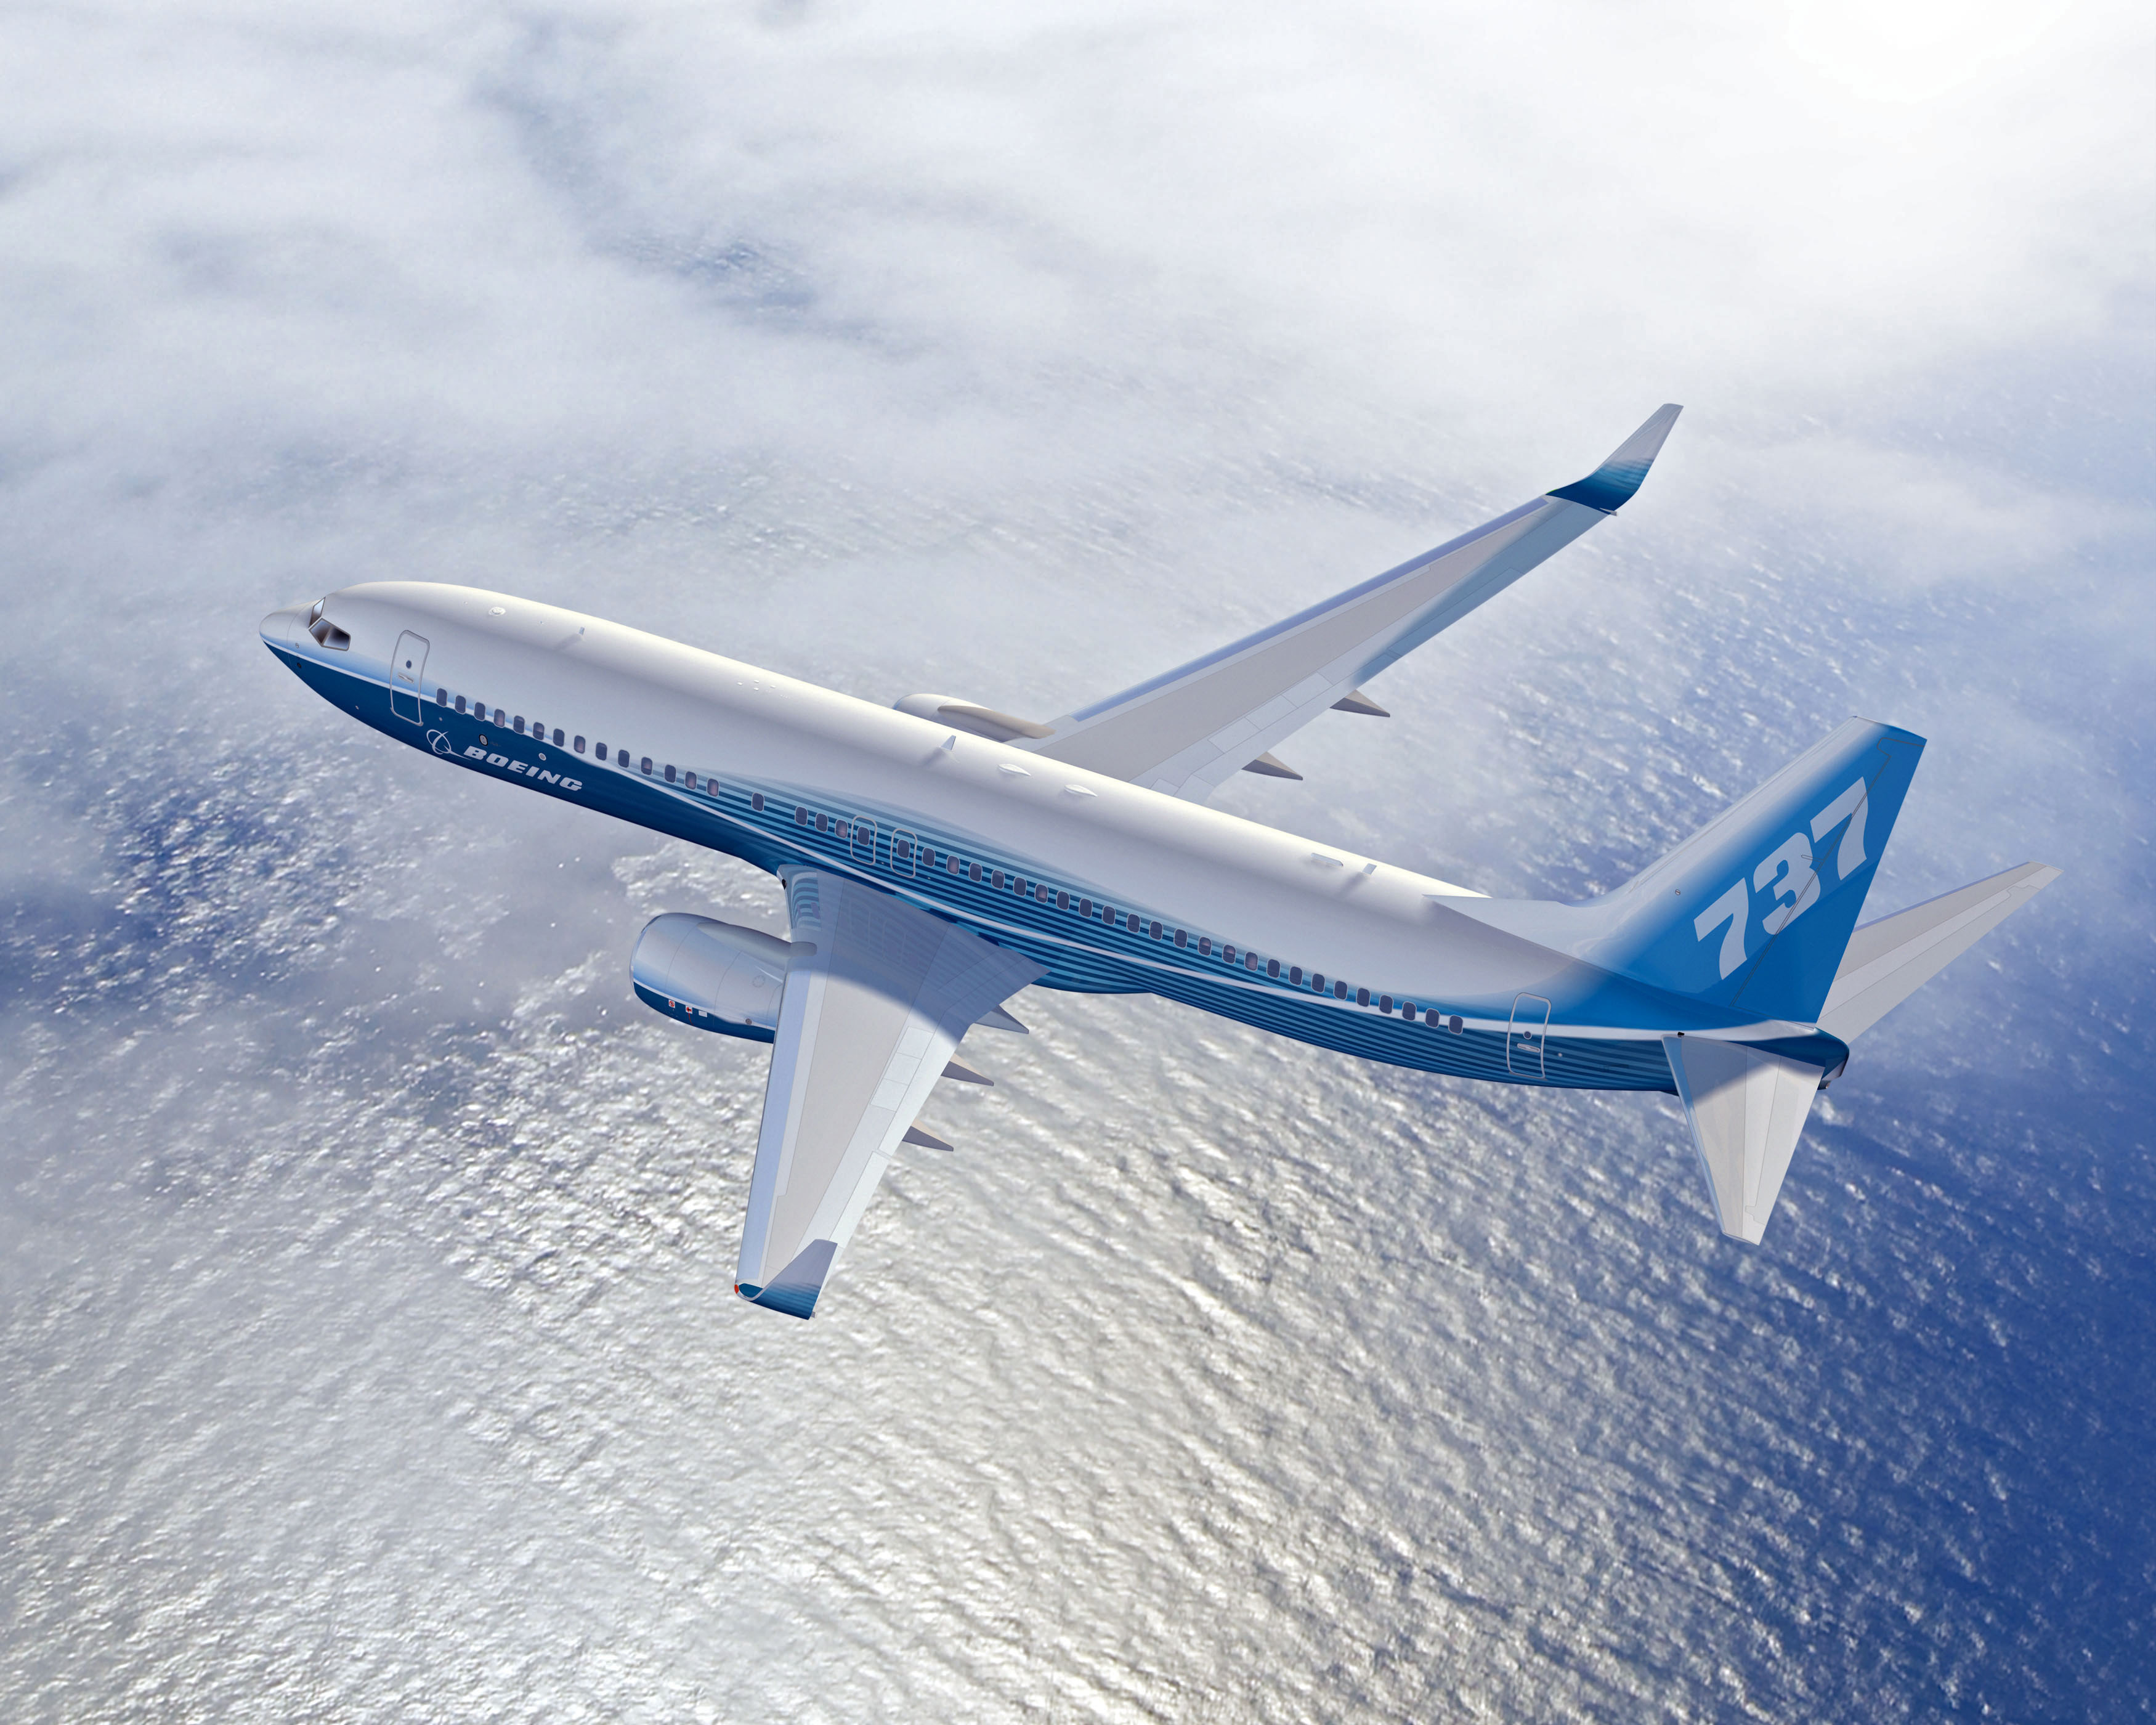 Alcoa signs the largest-ever contract with Boeing to supply aluminum sheet and plate products. The multiyear, more than $1 billion contract, makes Alcoa sole supplier to Boeing for wing skins on its metallic structure aircraft. Alcoa plate products, such as wing ribs and skins, will also be on every Boeing platform. The Boeing next-generation 737, shown here, is one of the world